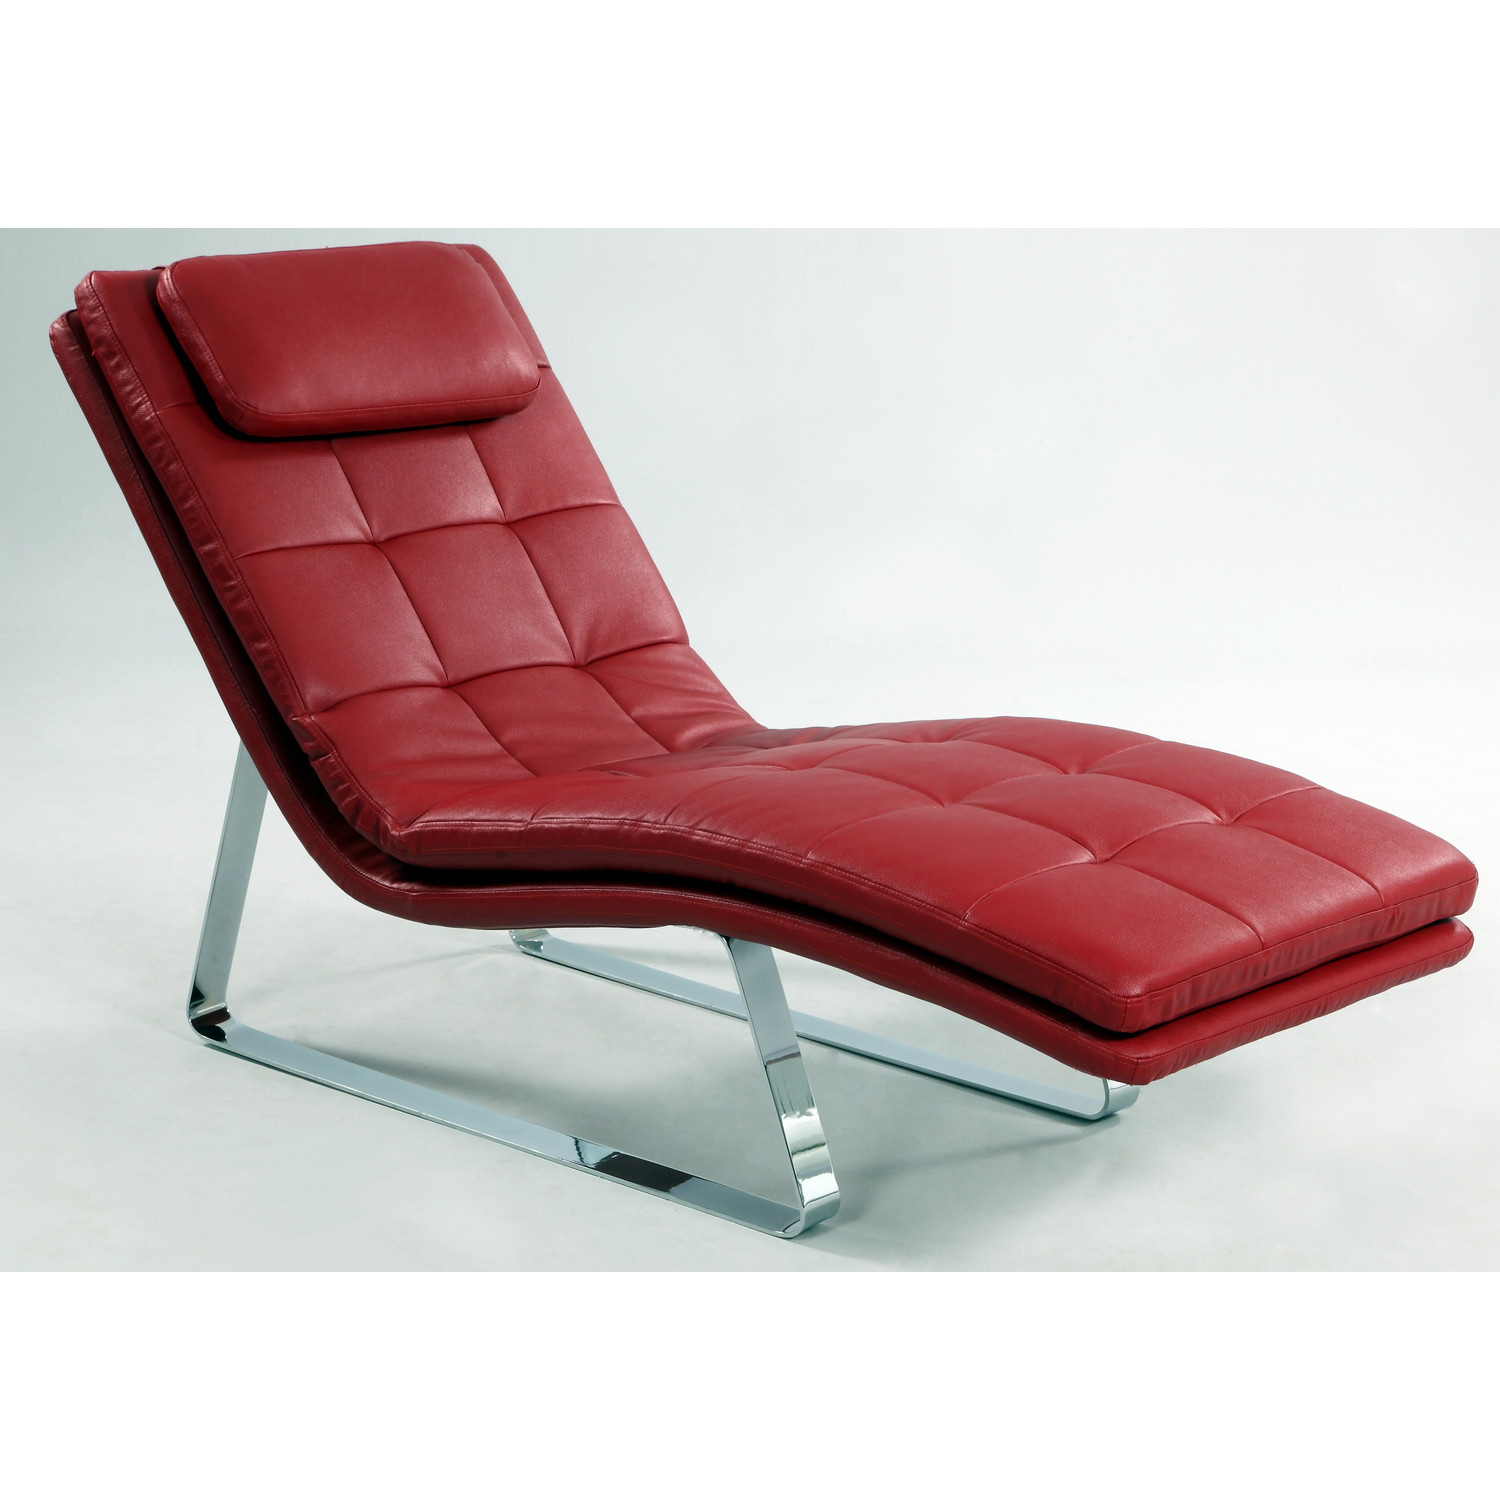 Image of: Leather Chaise Lounge Chair Red